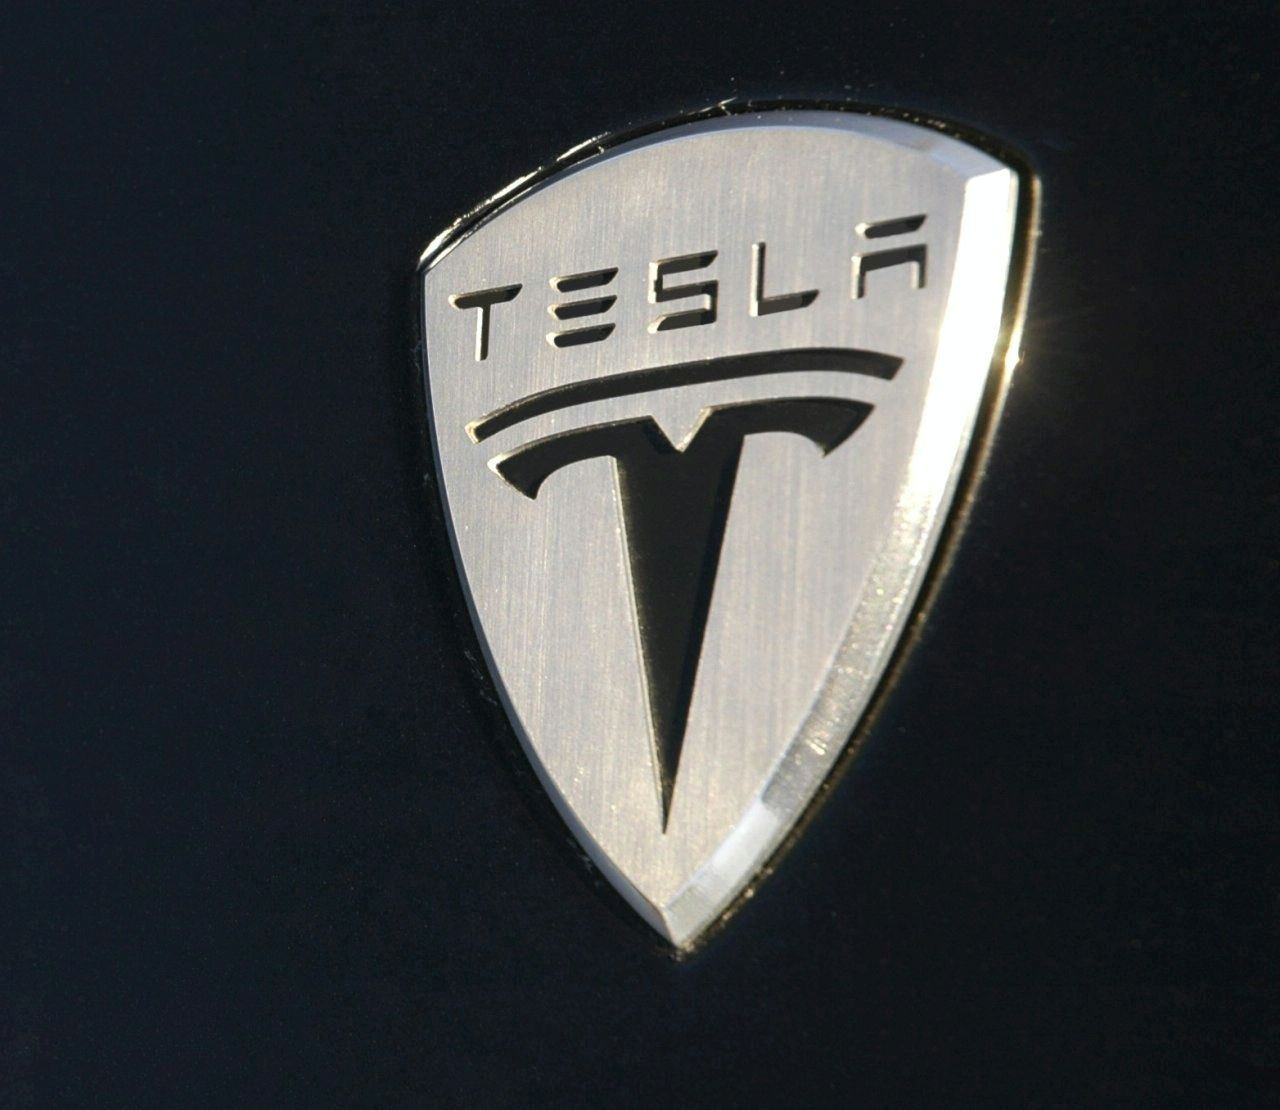 Tesla pays government loan nine years in advance